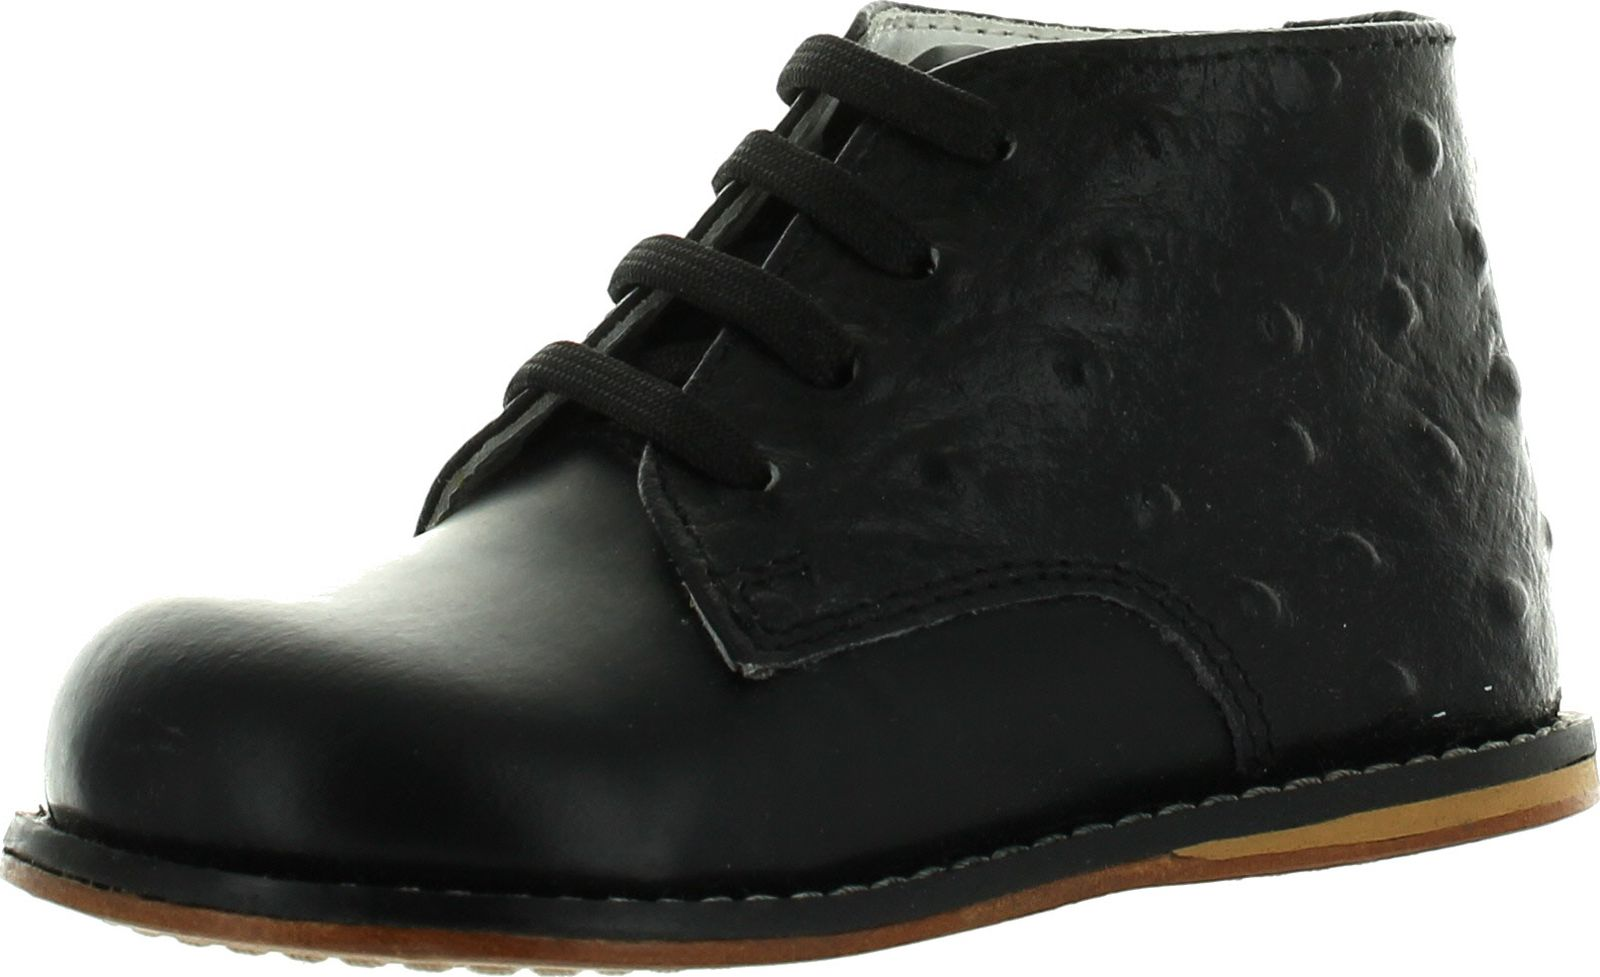 josmo 8190 early walking high top shoes with stiff sole ebay